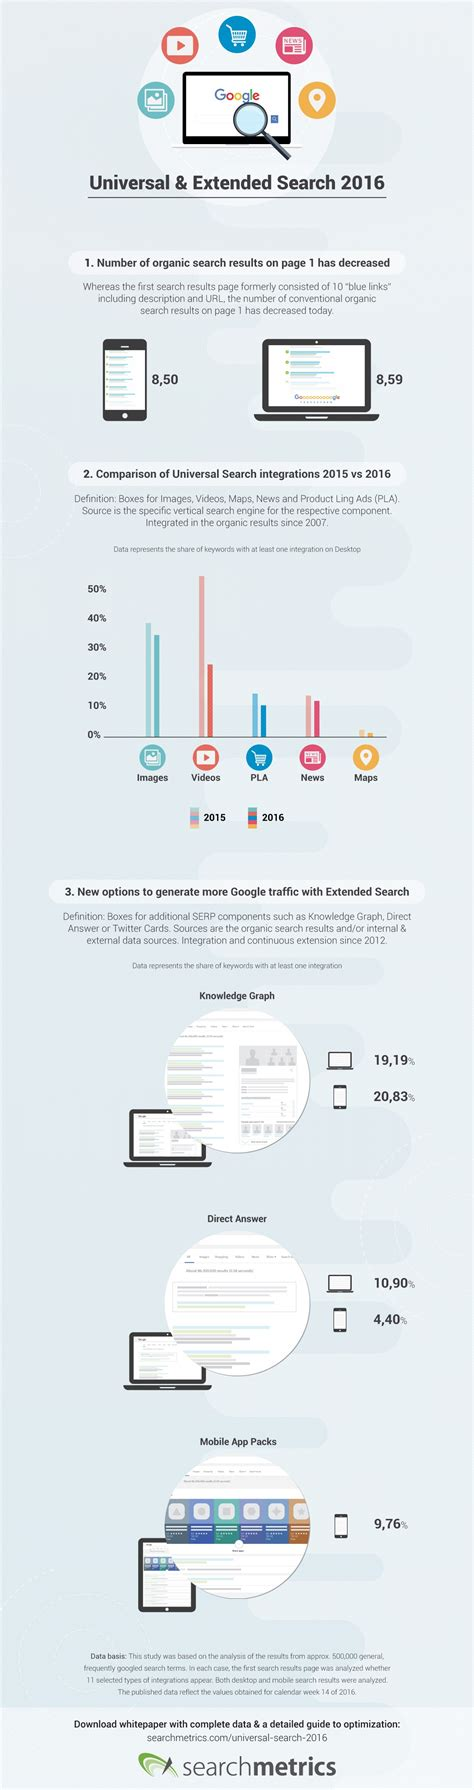 google images has changed how google search has changed in 2016 infographic